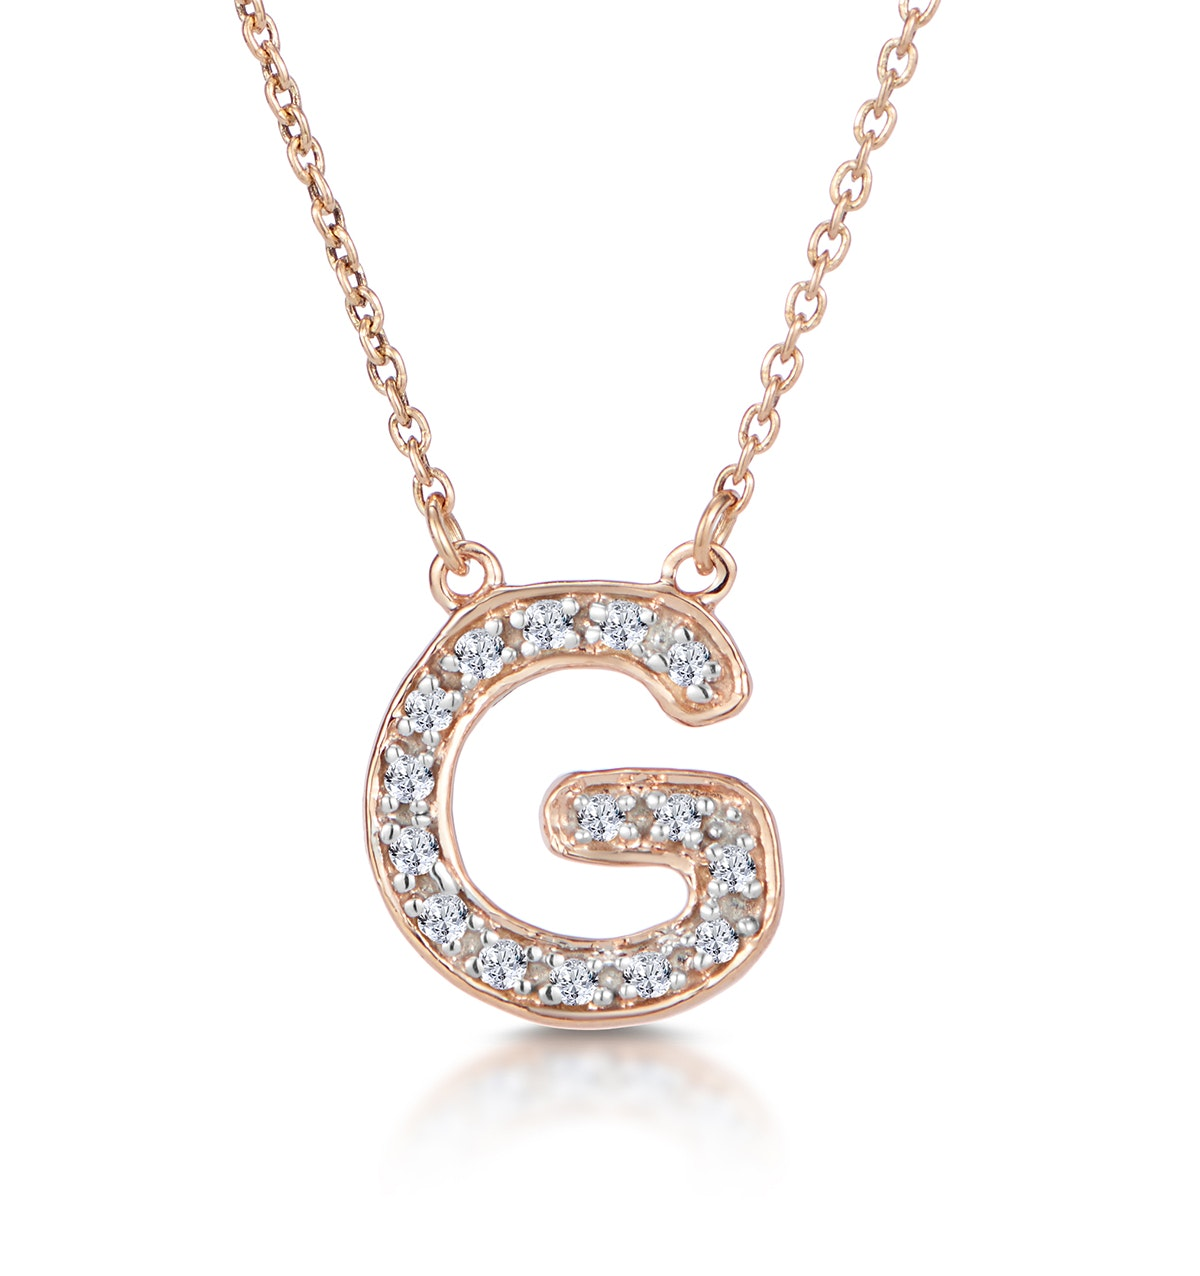 Initial 'G' Necklace Diamond Encrusted Pave Set in 9K Rose Gold